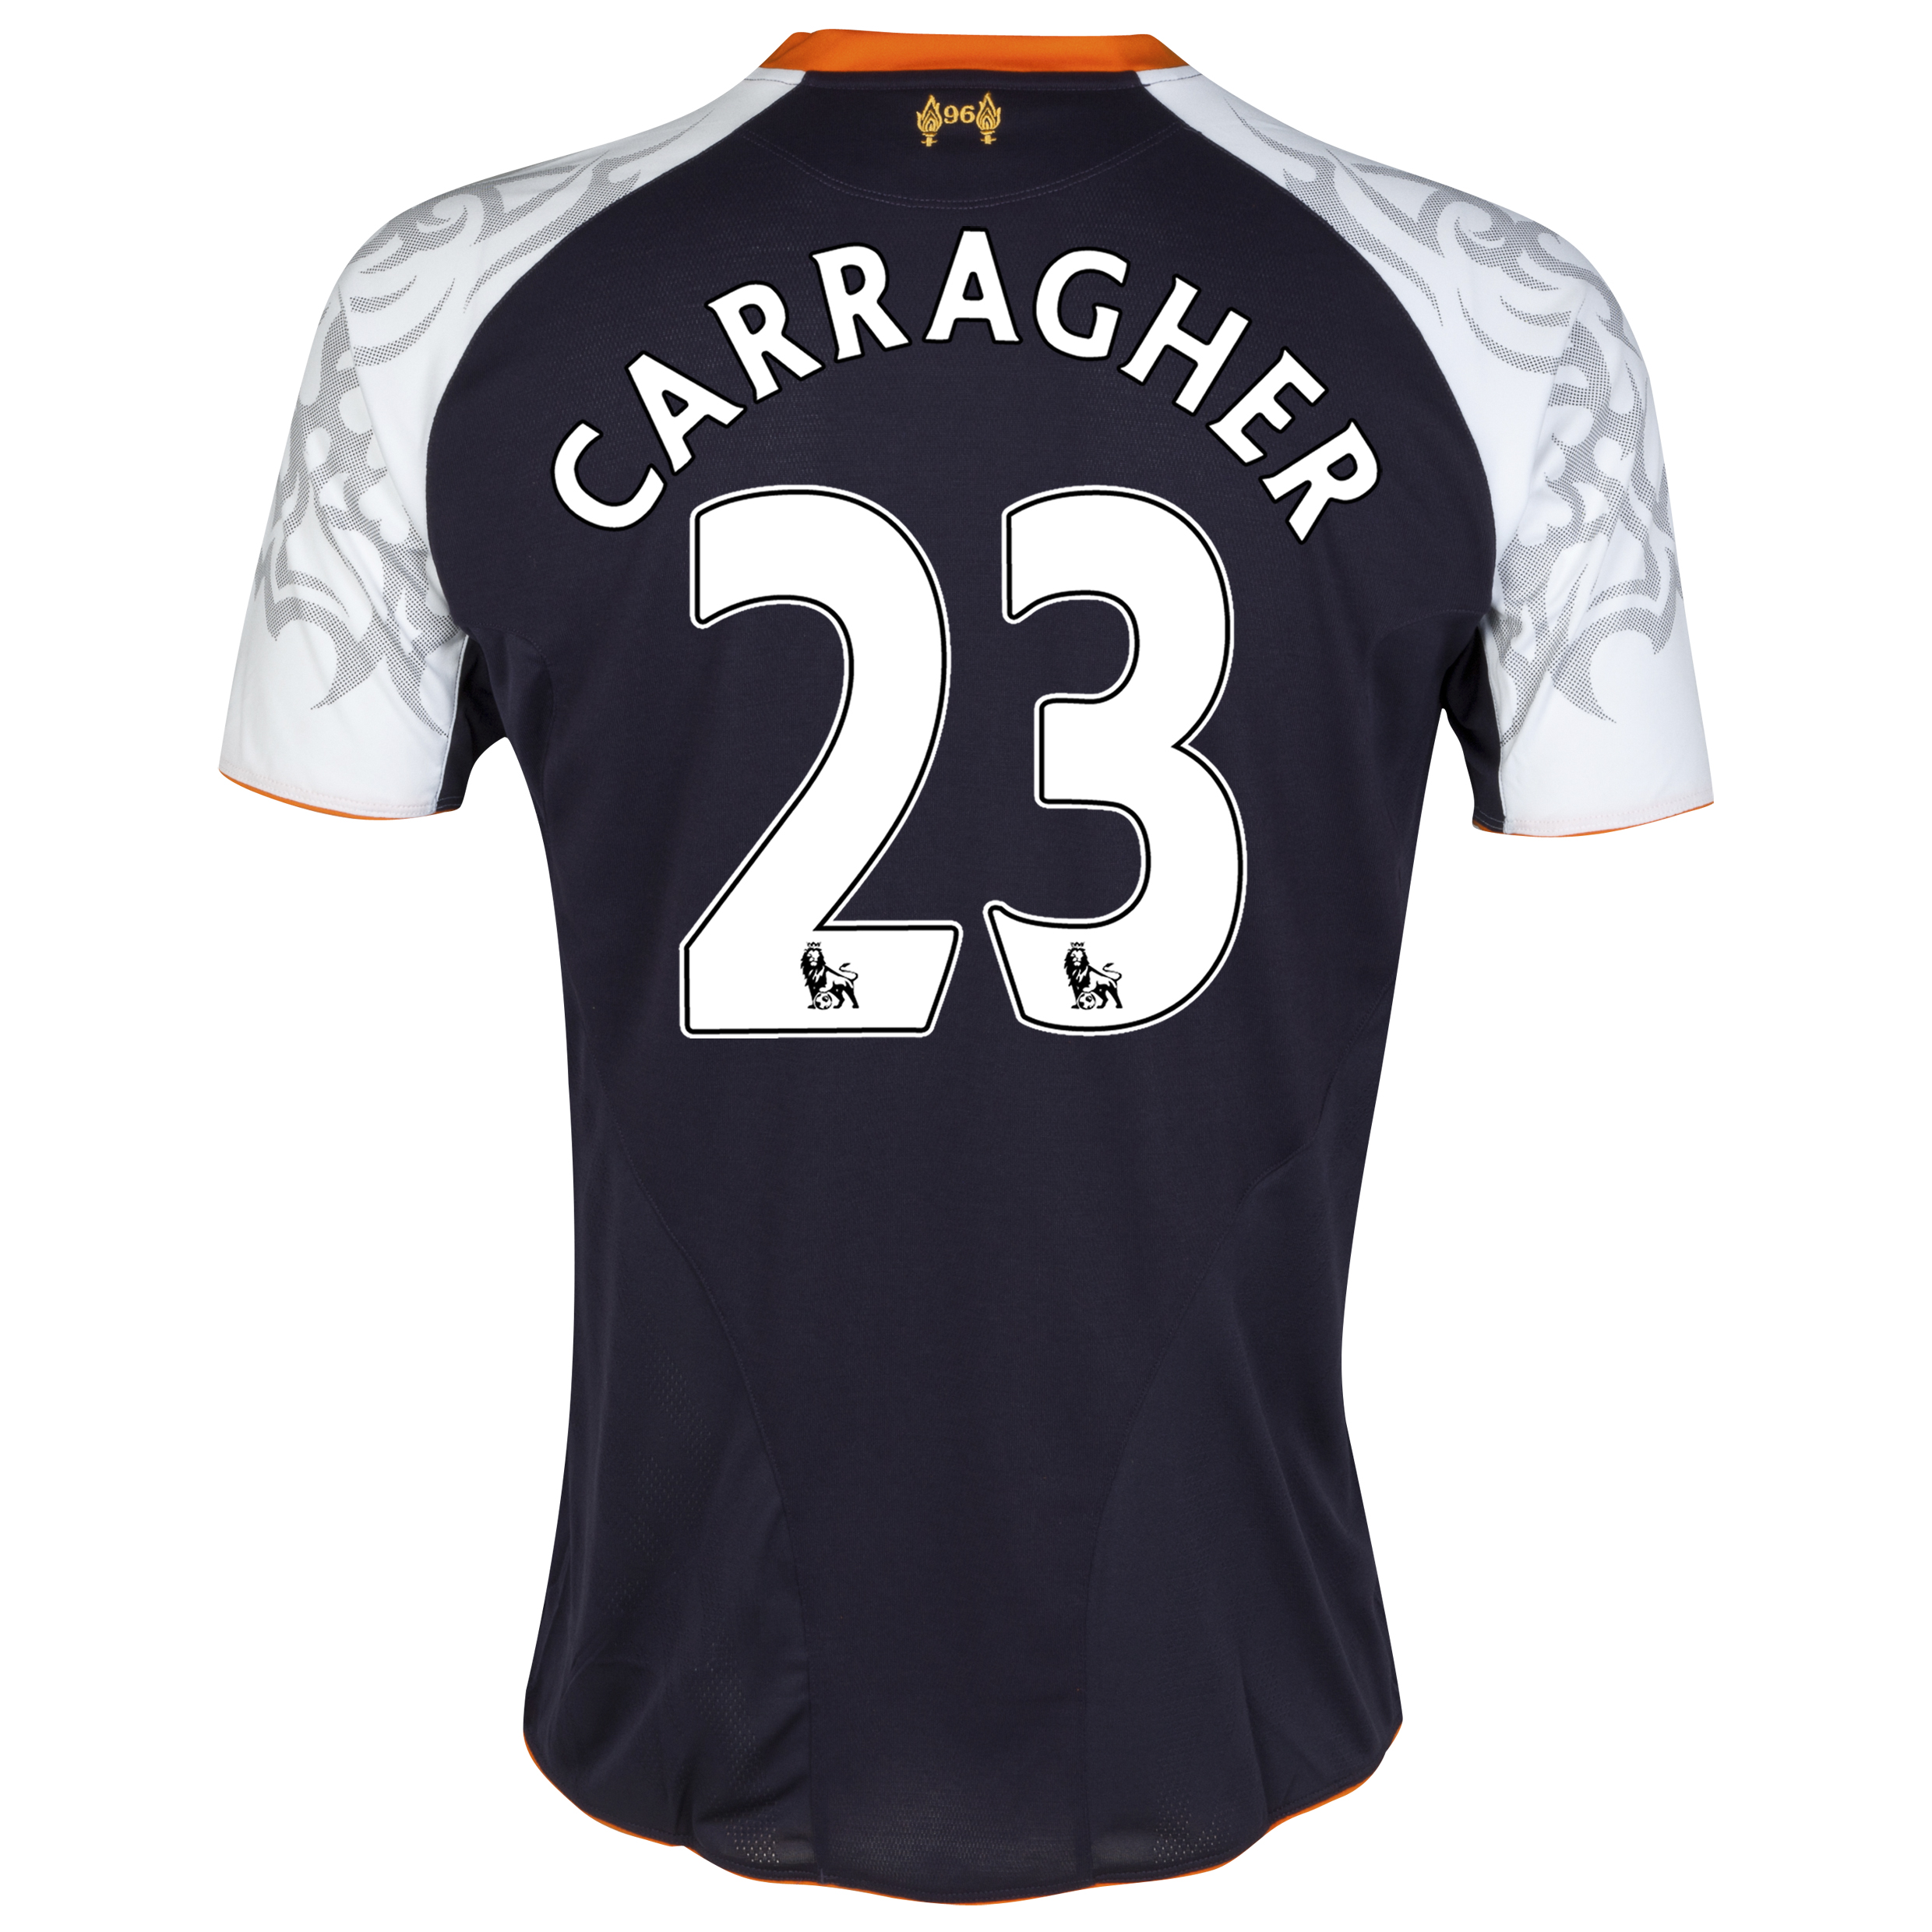 Liverpool Third Shirt 2012/13 - Youths with Carragher 23 printing